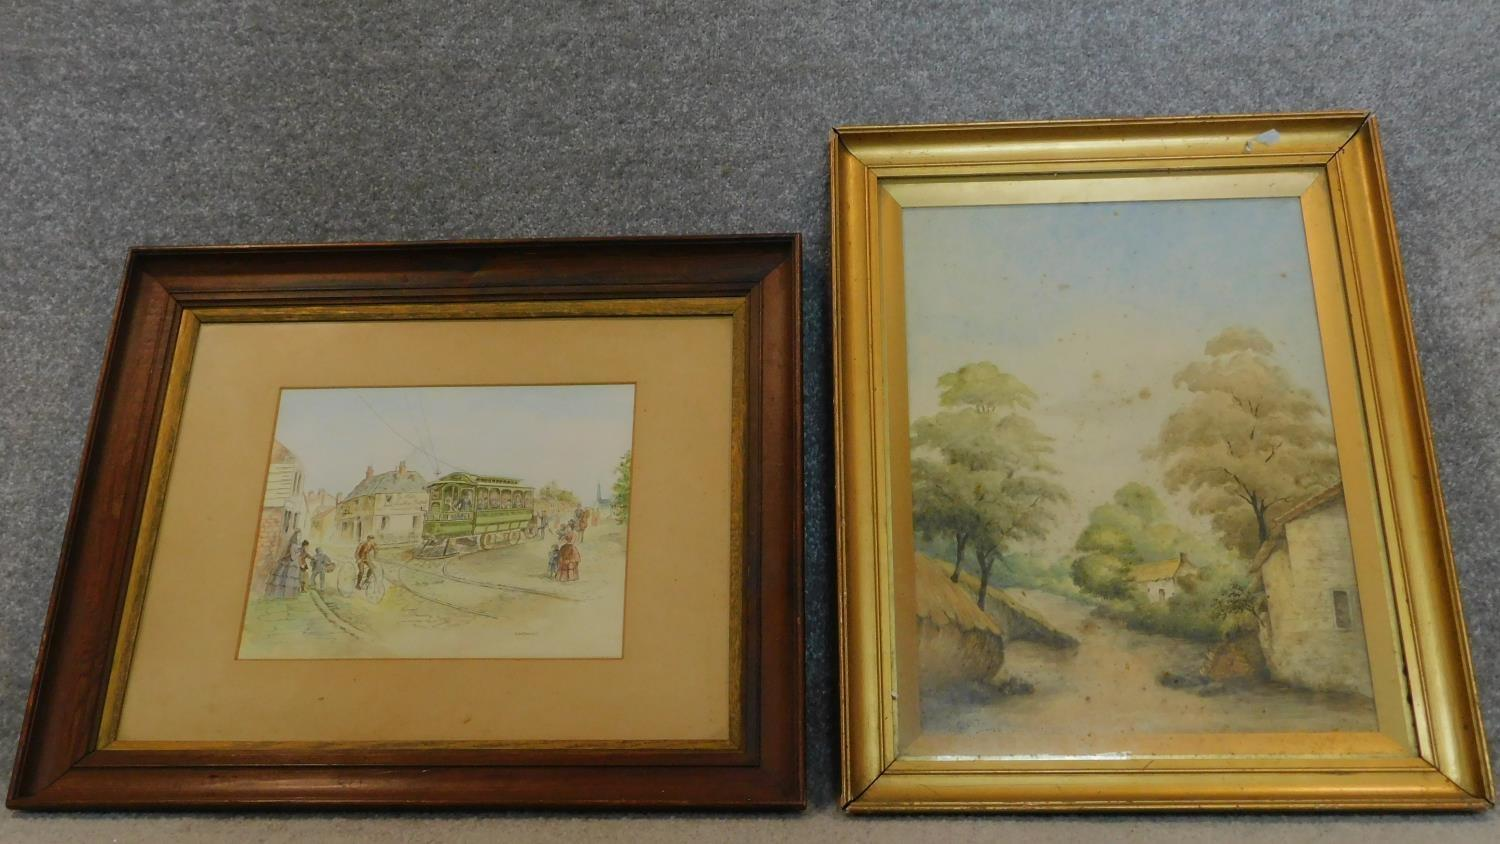 A 19th century framed and glazed watercolour country landscape and a framed pen and ink drawing.